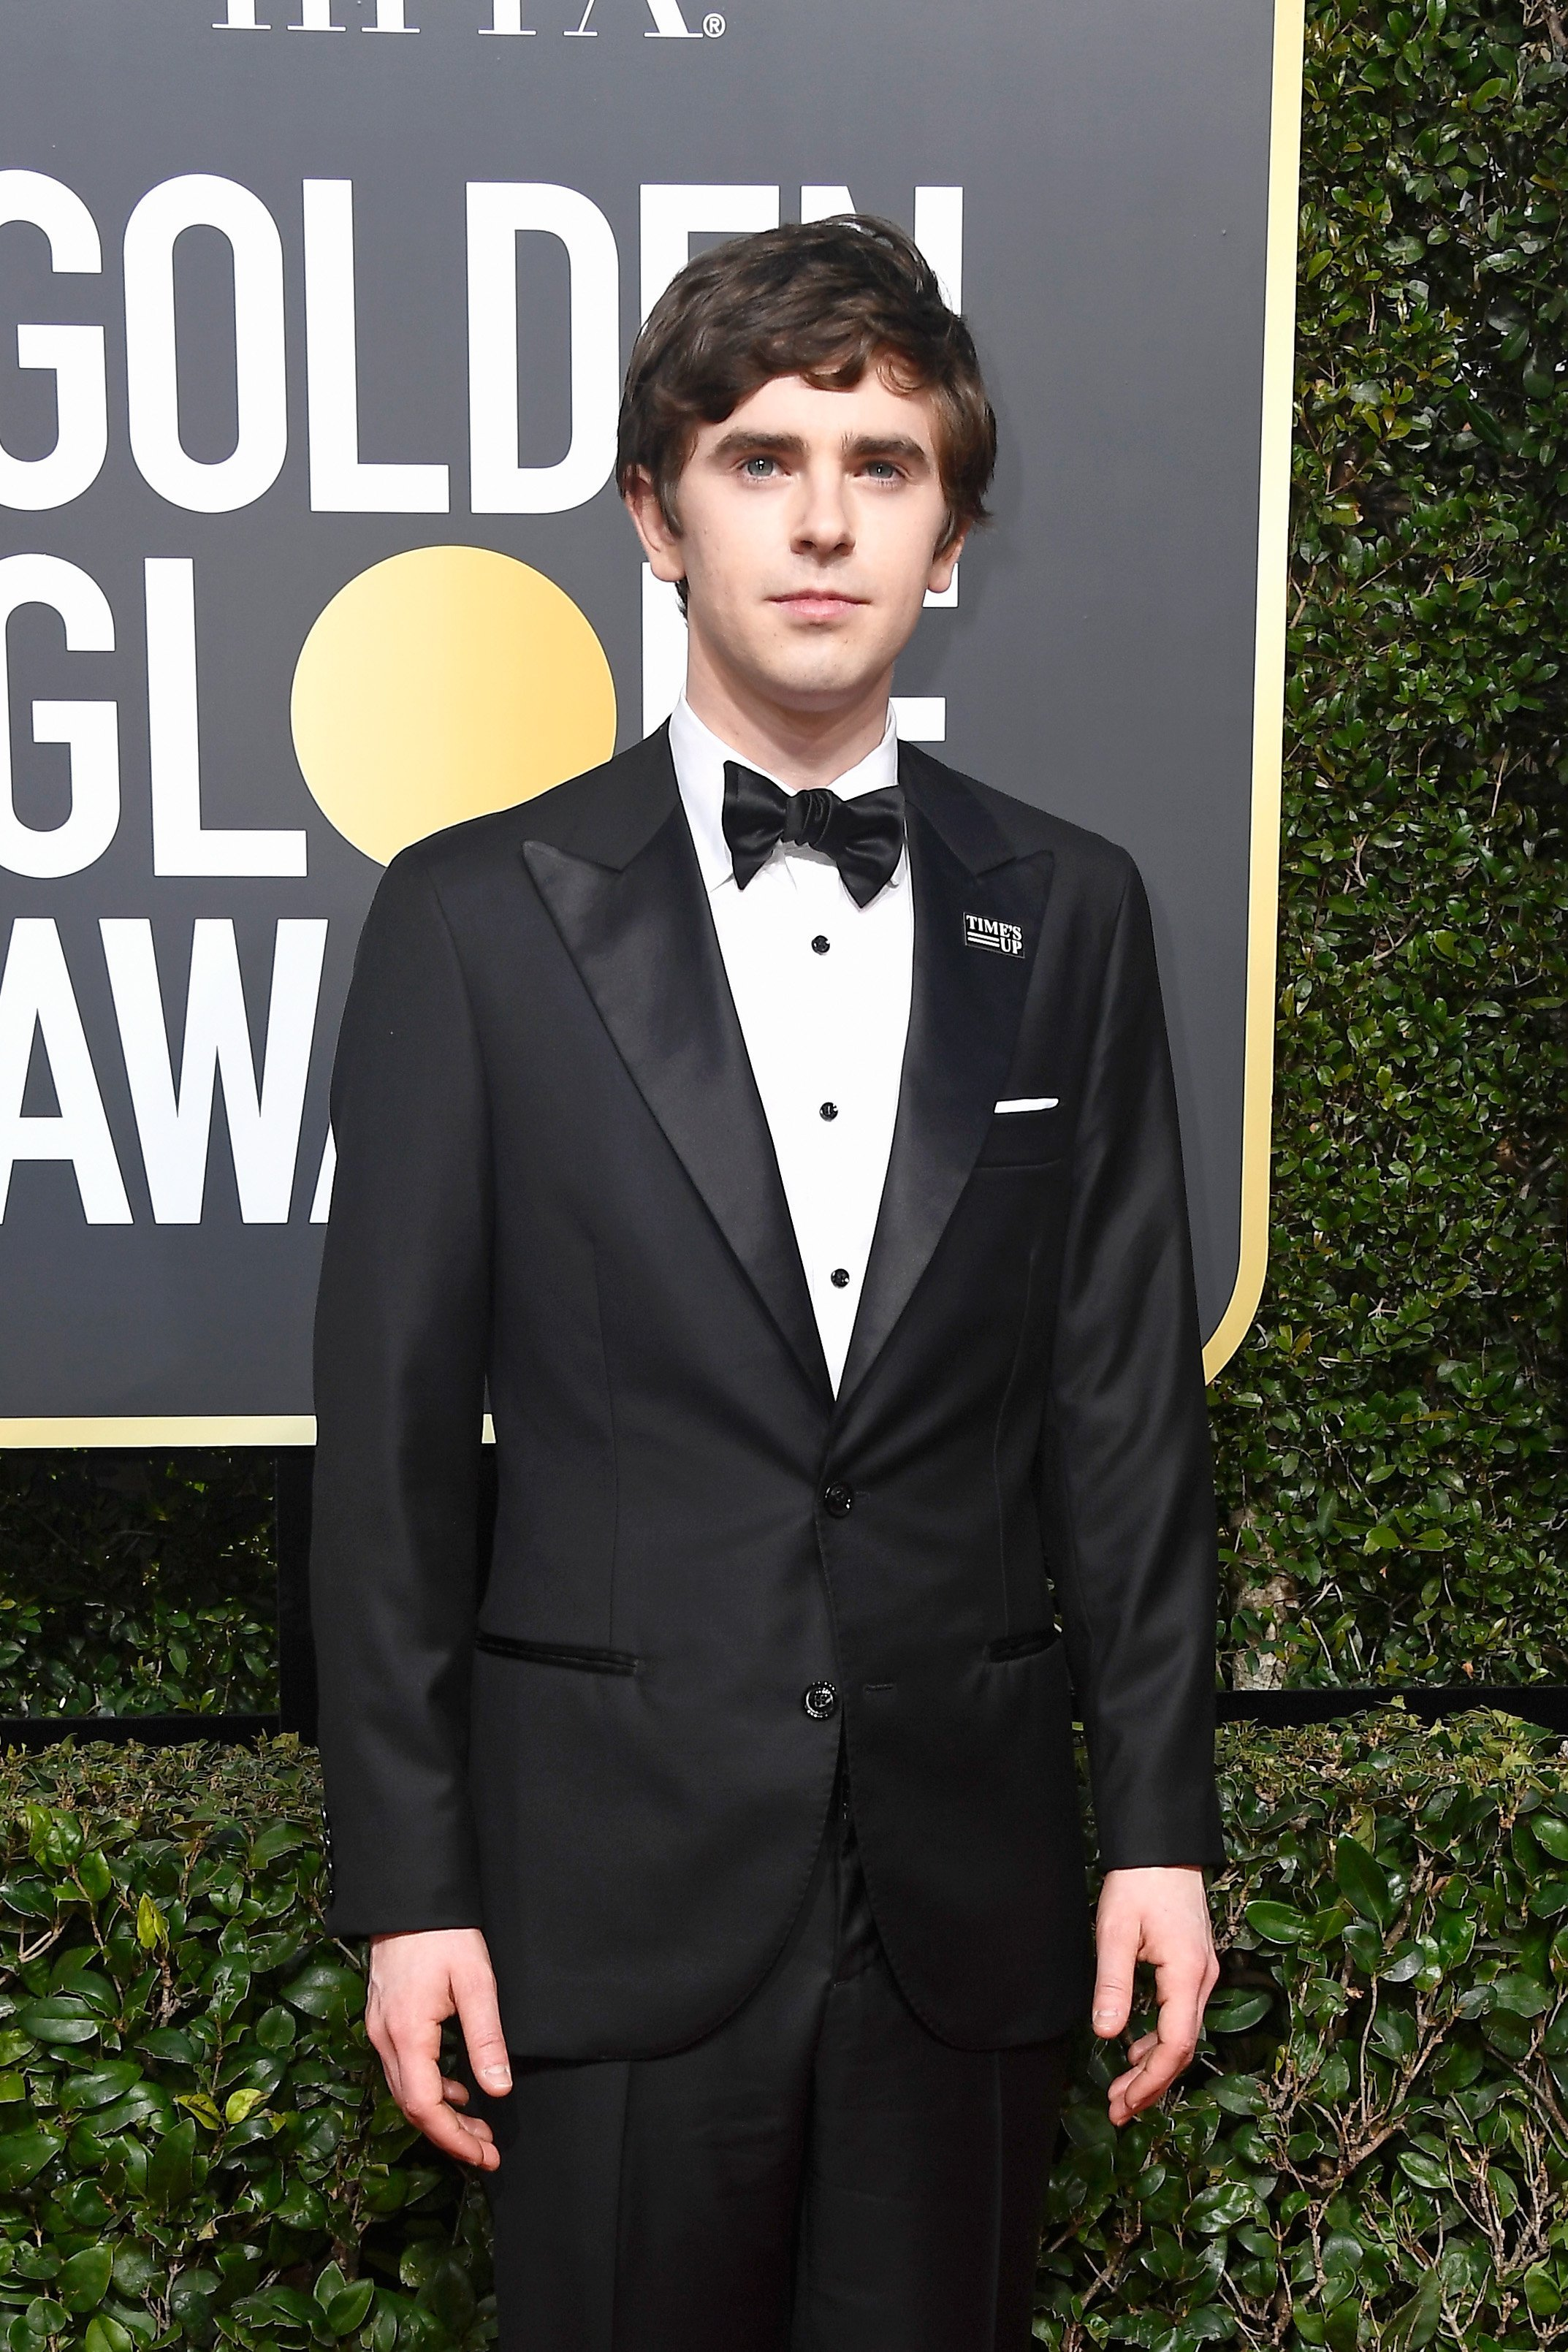 Freddie Highmore attends the 75th Annual Golden Globe Awards in Beverly Hills, California on January 7, 2018 | Photo: Getty Images